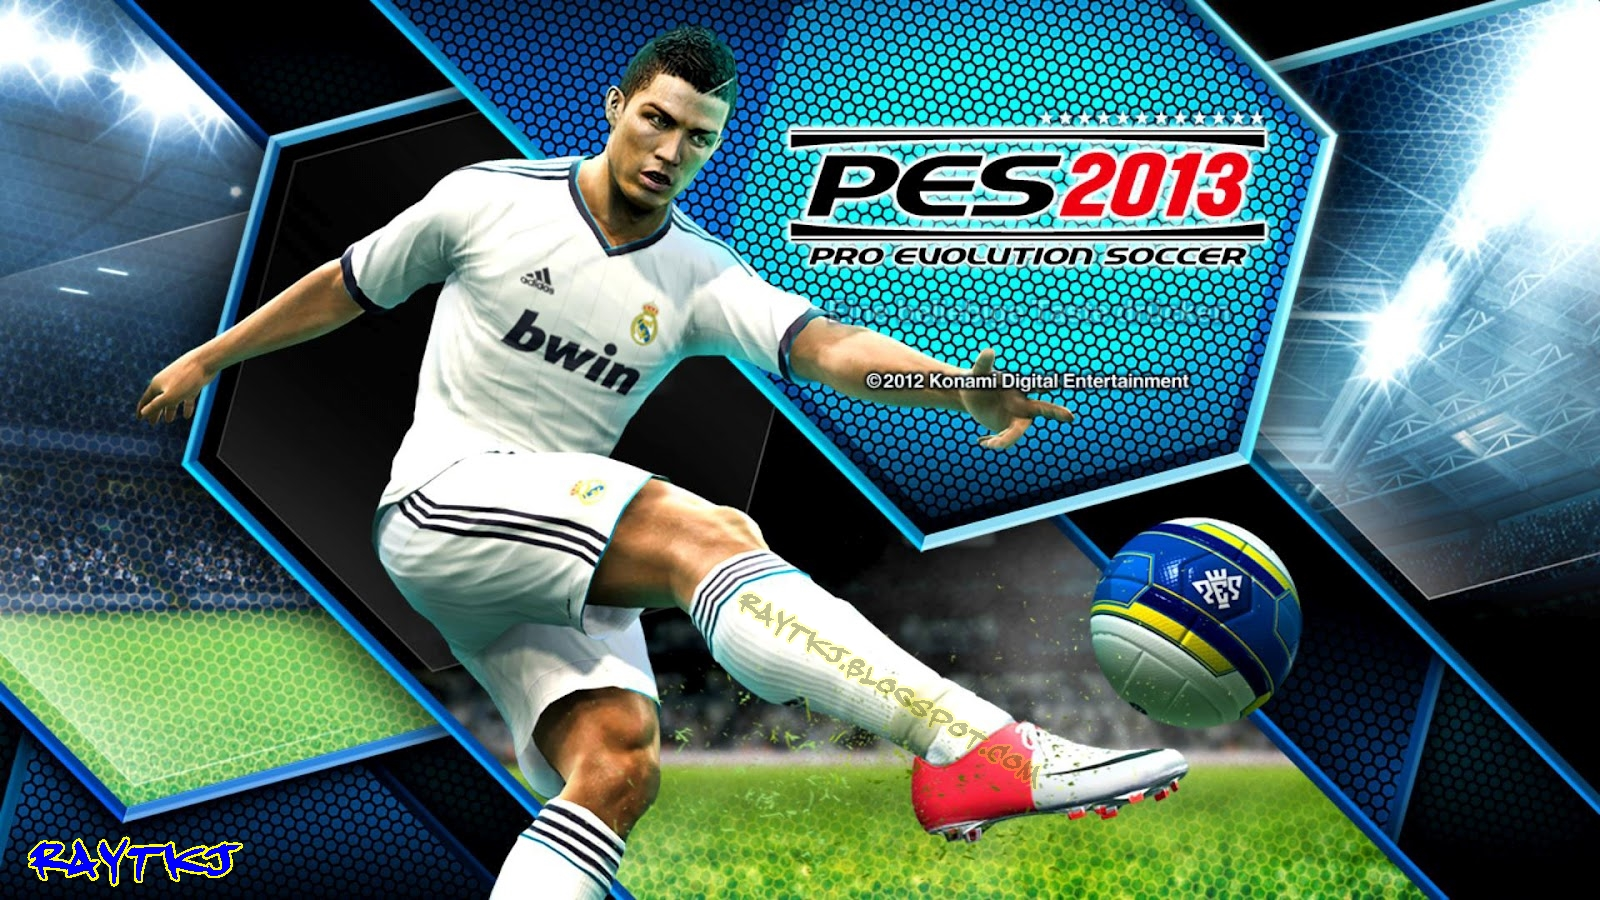 Pes 2013 pro team patch vol. 1 new year patch 2018 pes patch.